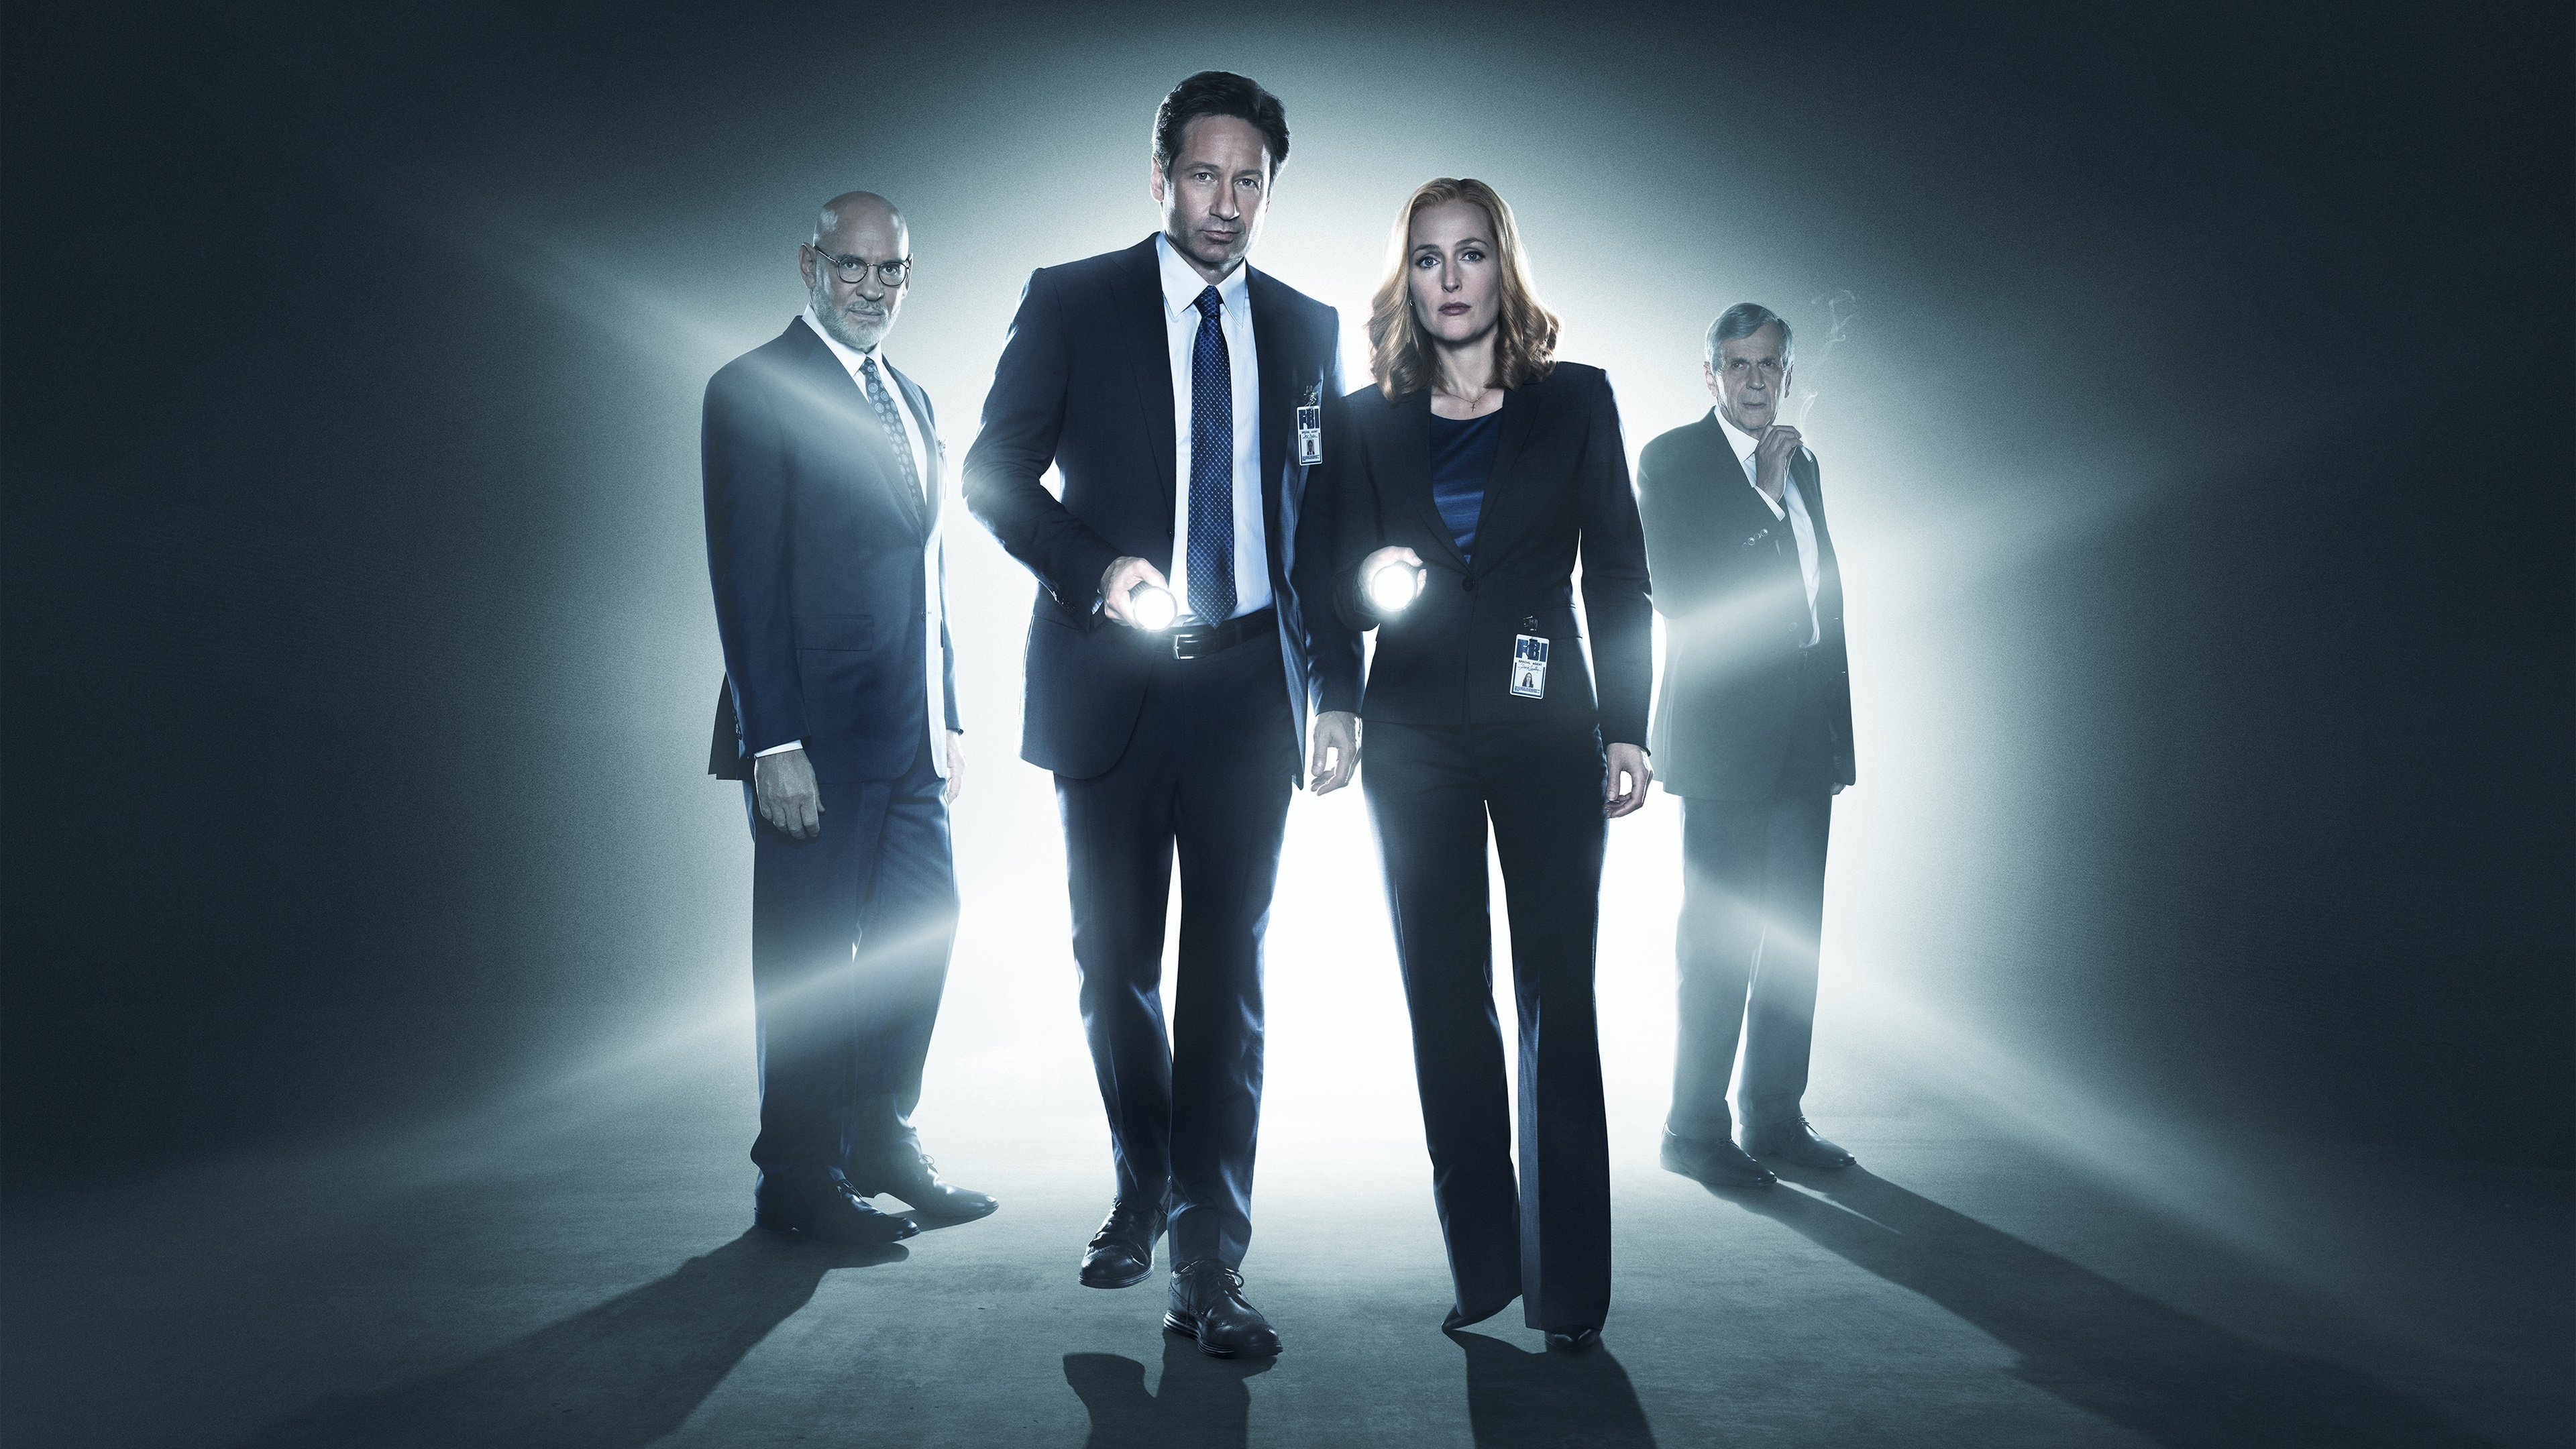 The X Files 4k Ultra HD Wallpaper Background Image 3840x2160 3840x2160